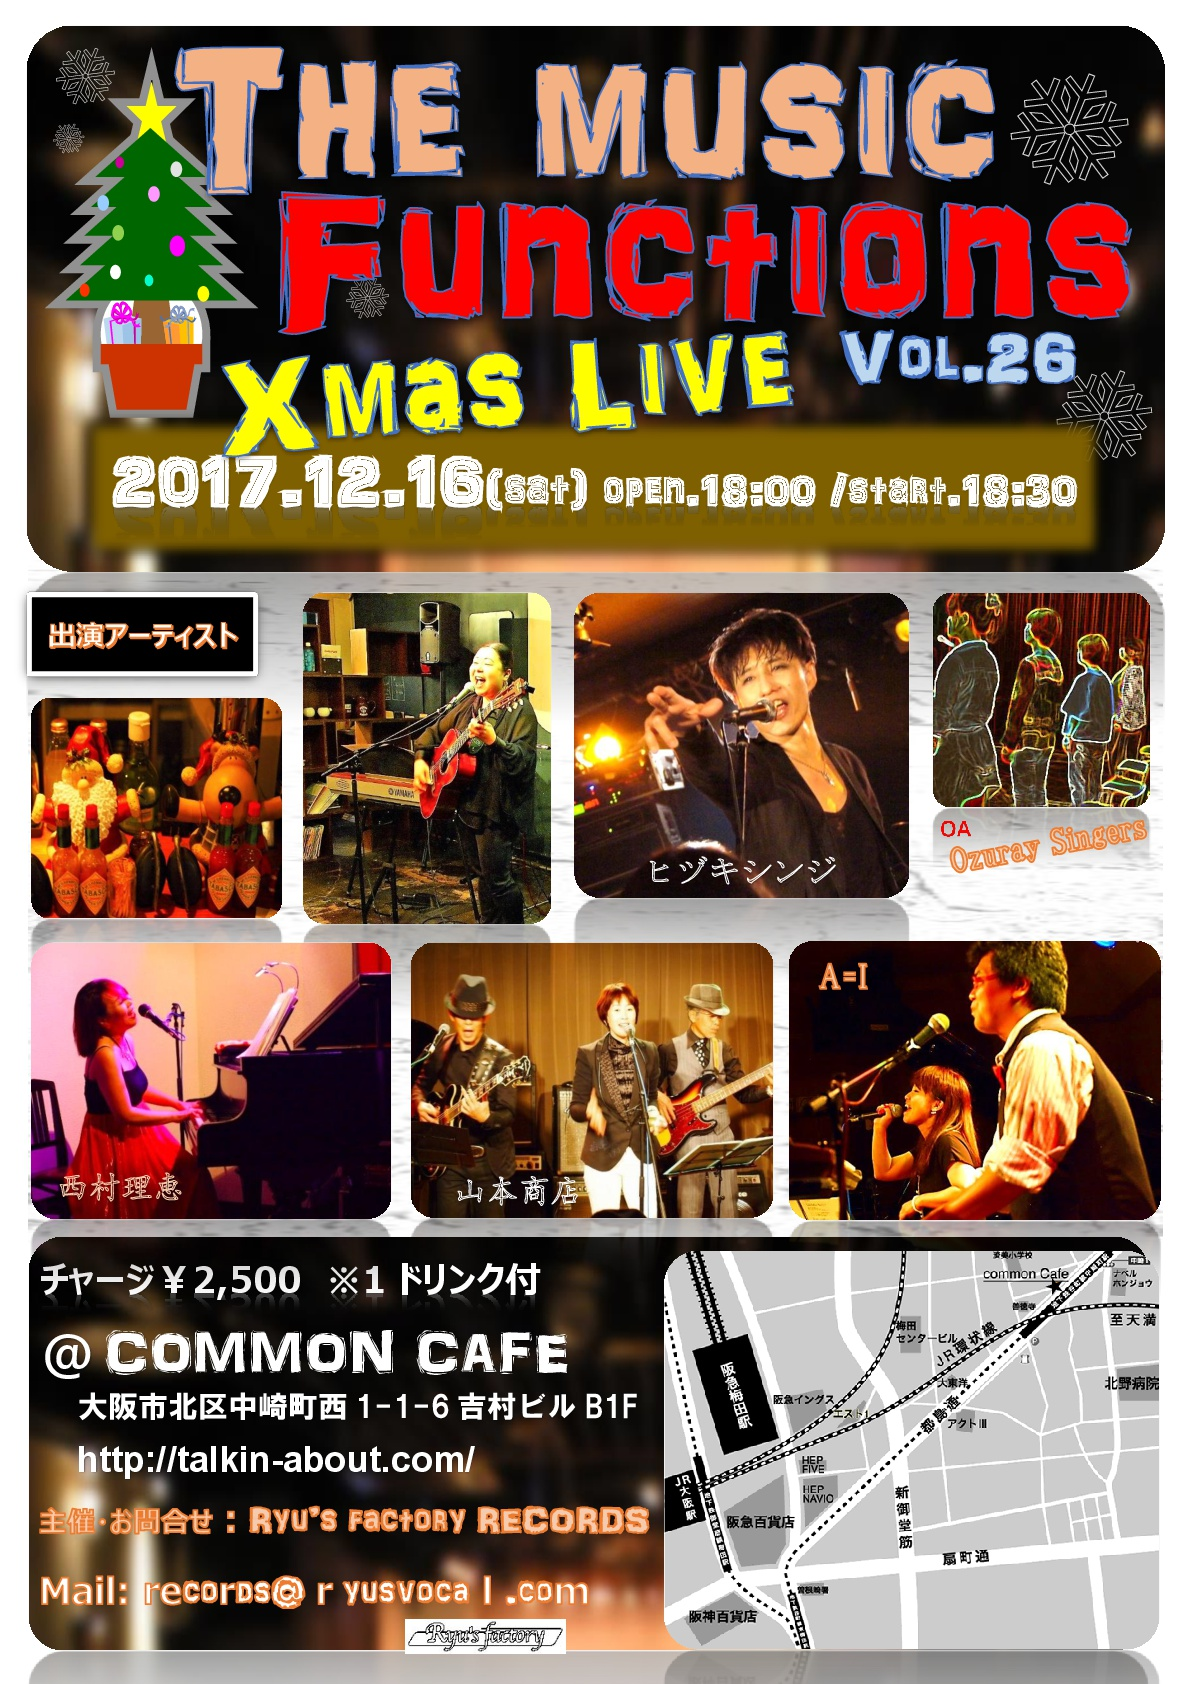 Ryu'sイベント The music functions vol.26 Xmas LIVE